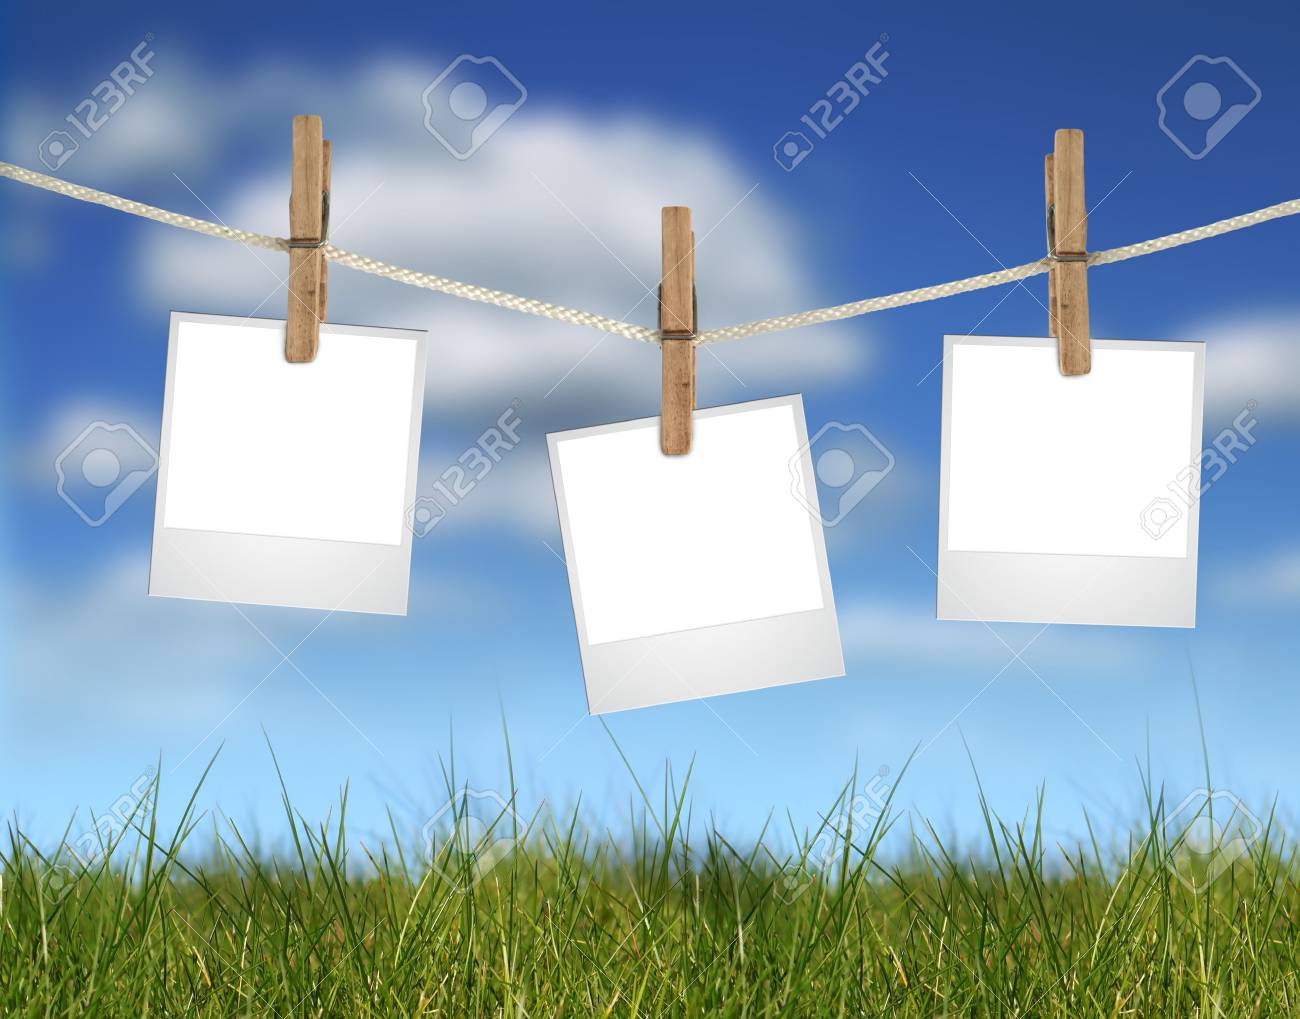 Pictures. Empty space for your text or image. Stock Photo - 4654041